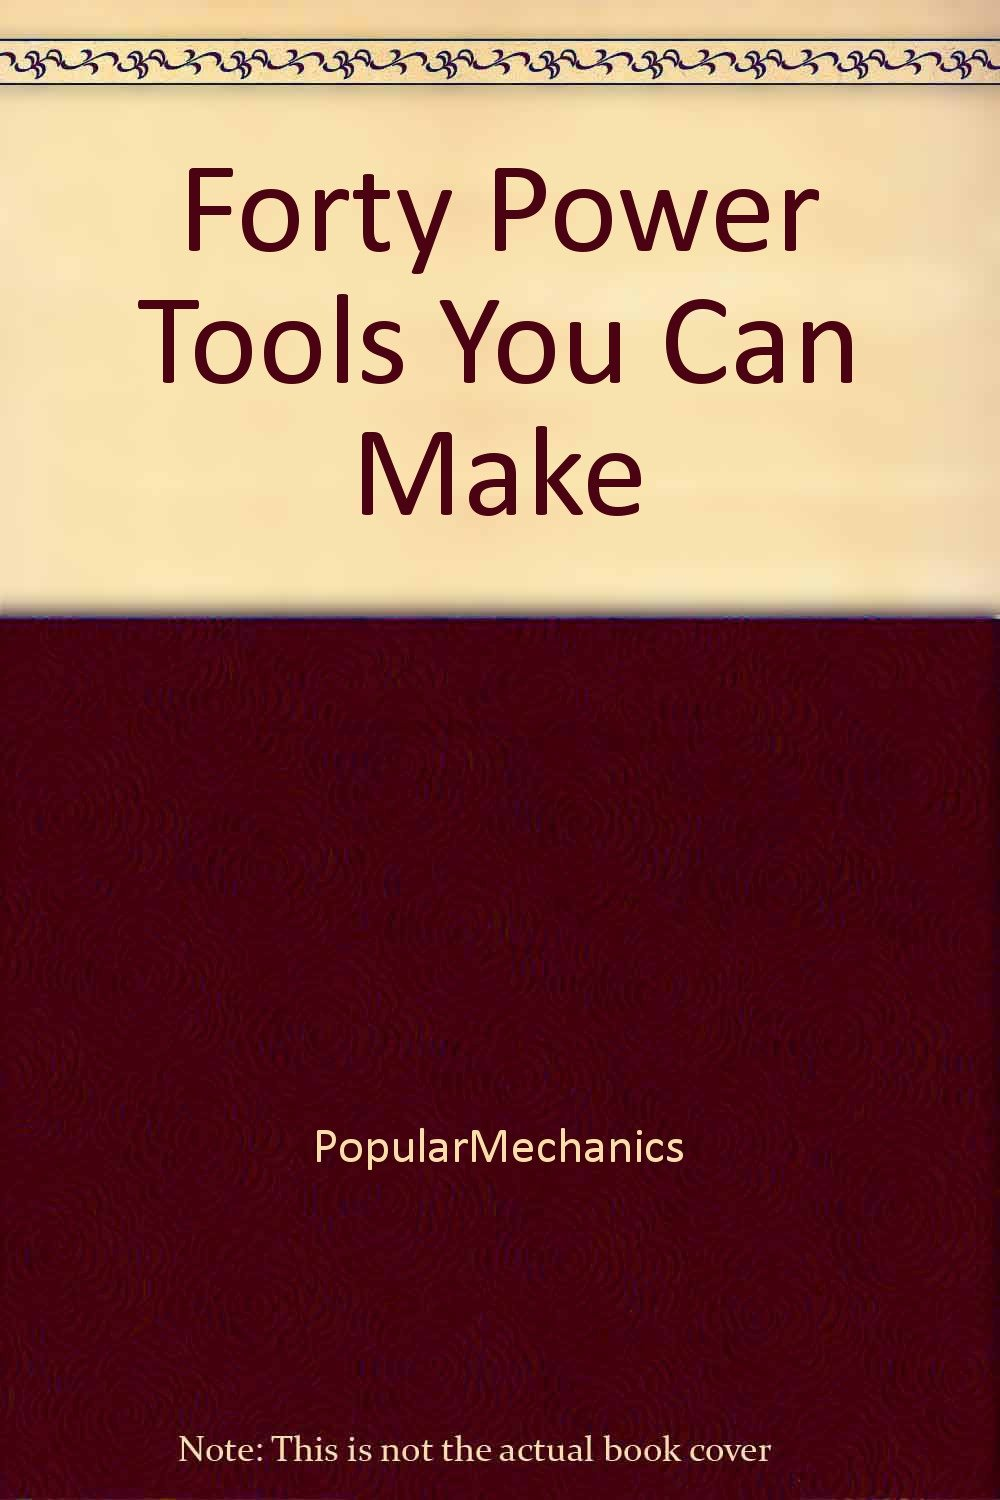 Forty Power Tools You Can Make